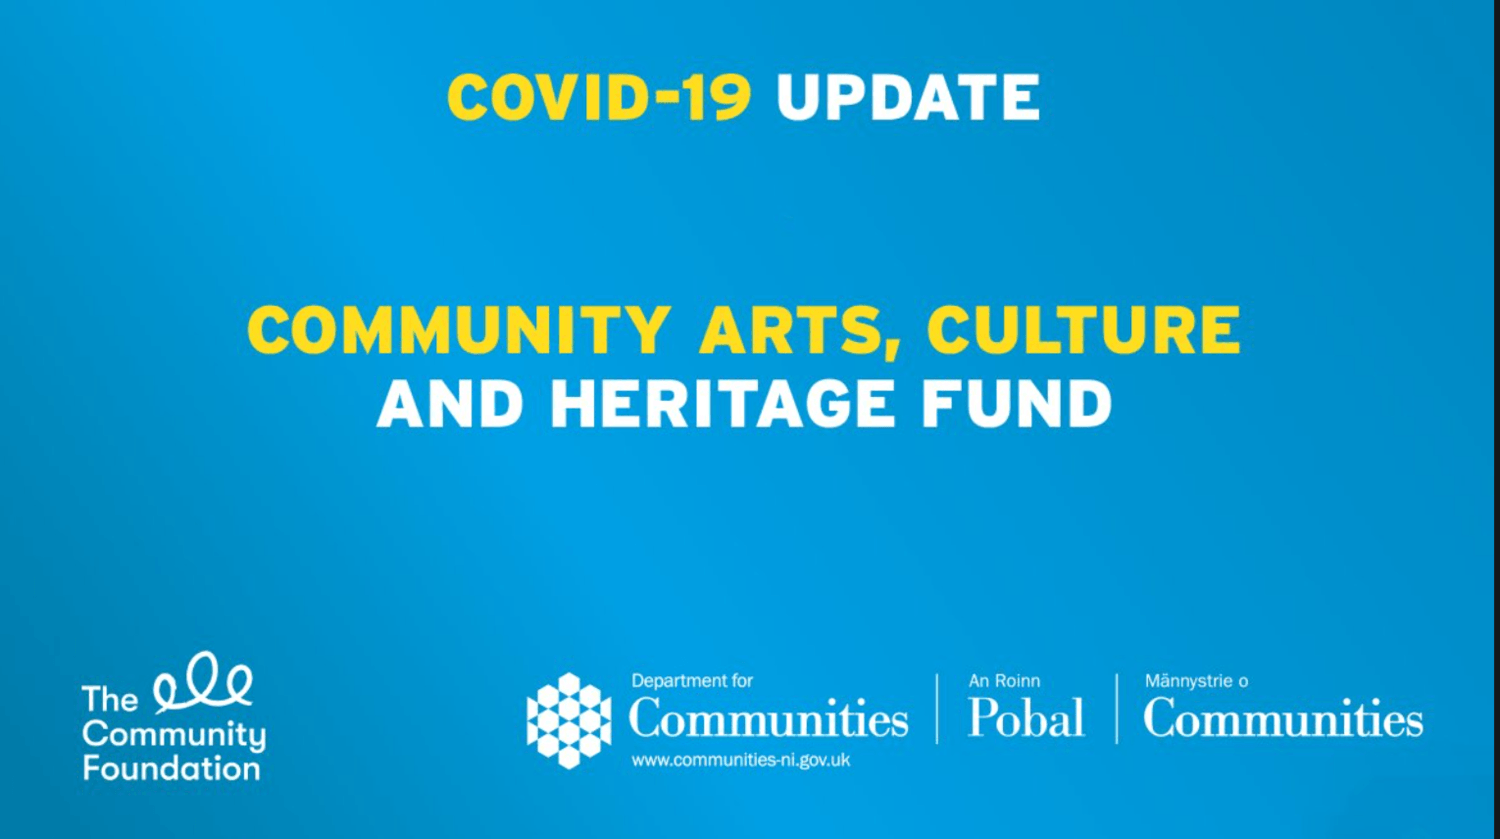 £2 Million Community Arts, Culture and Heritage Fund